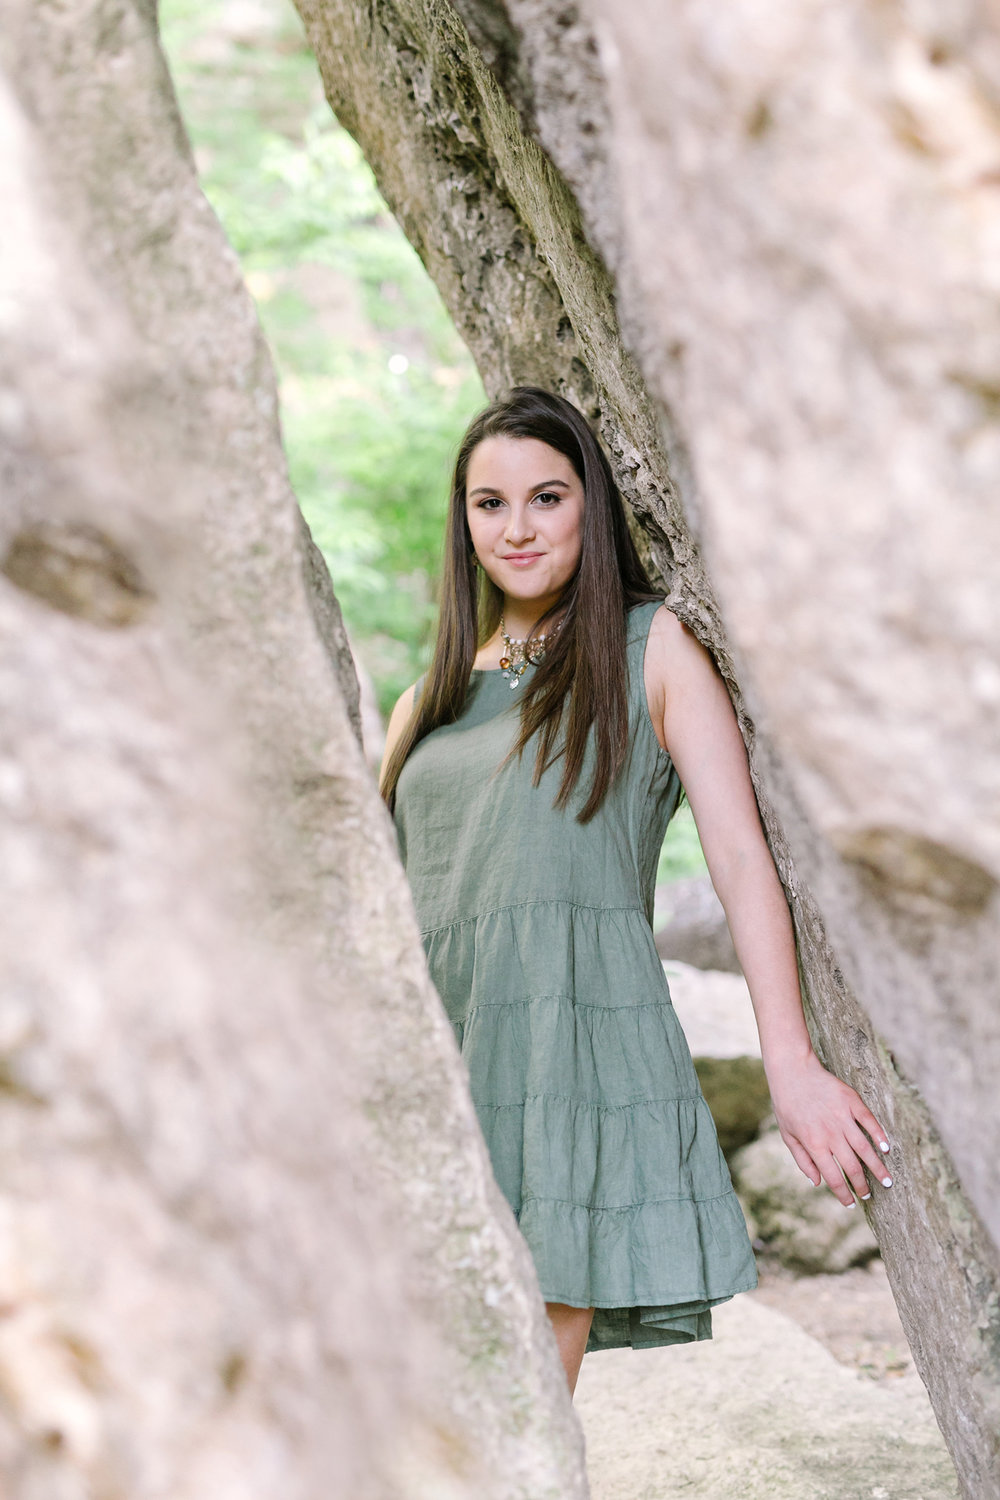 austin-tx-senior-portrait-photographer-09.jpg